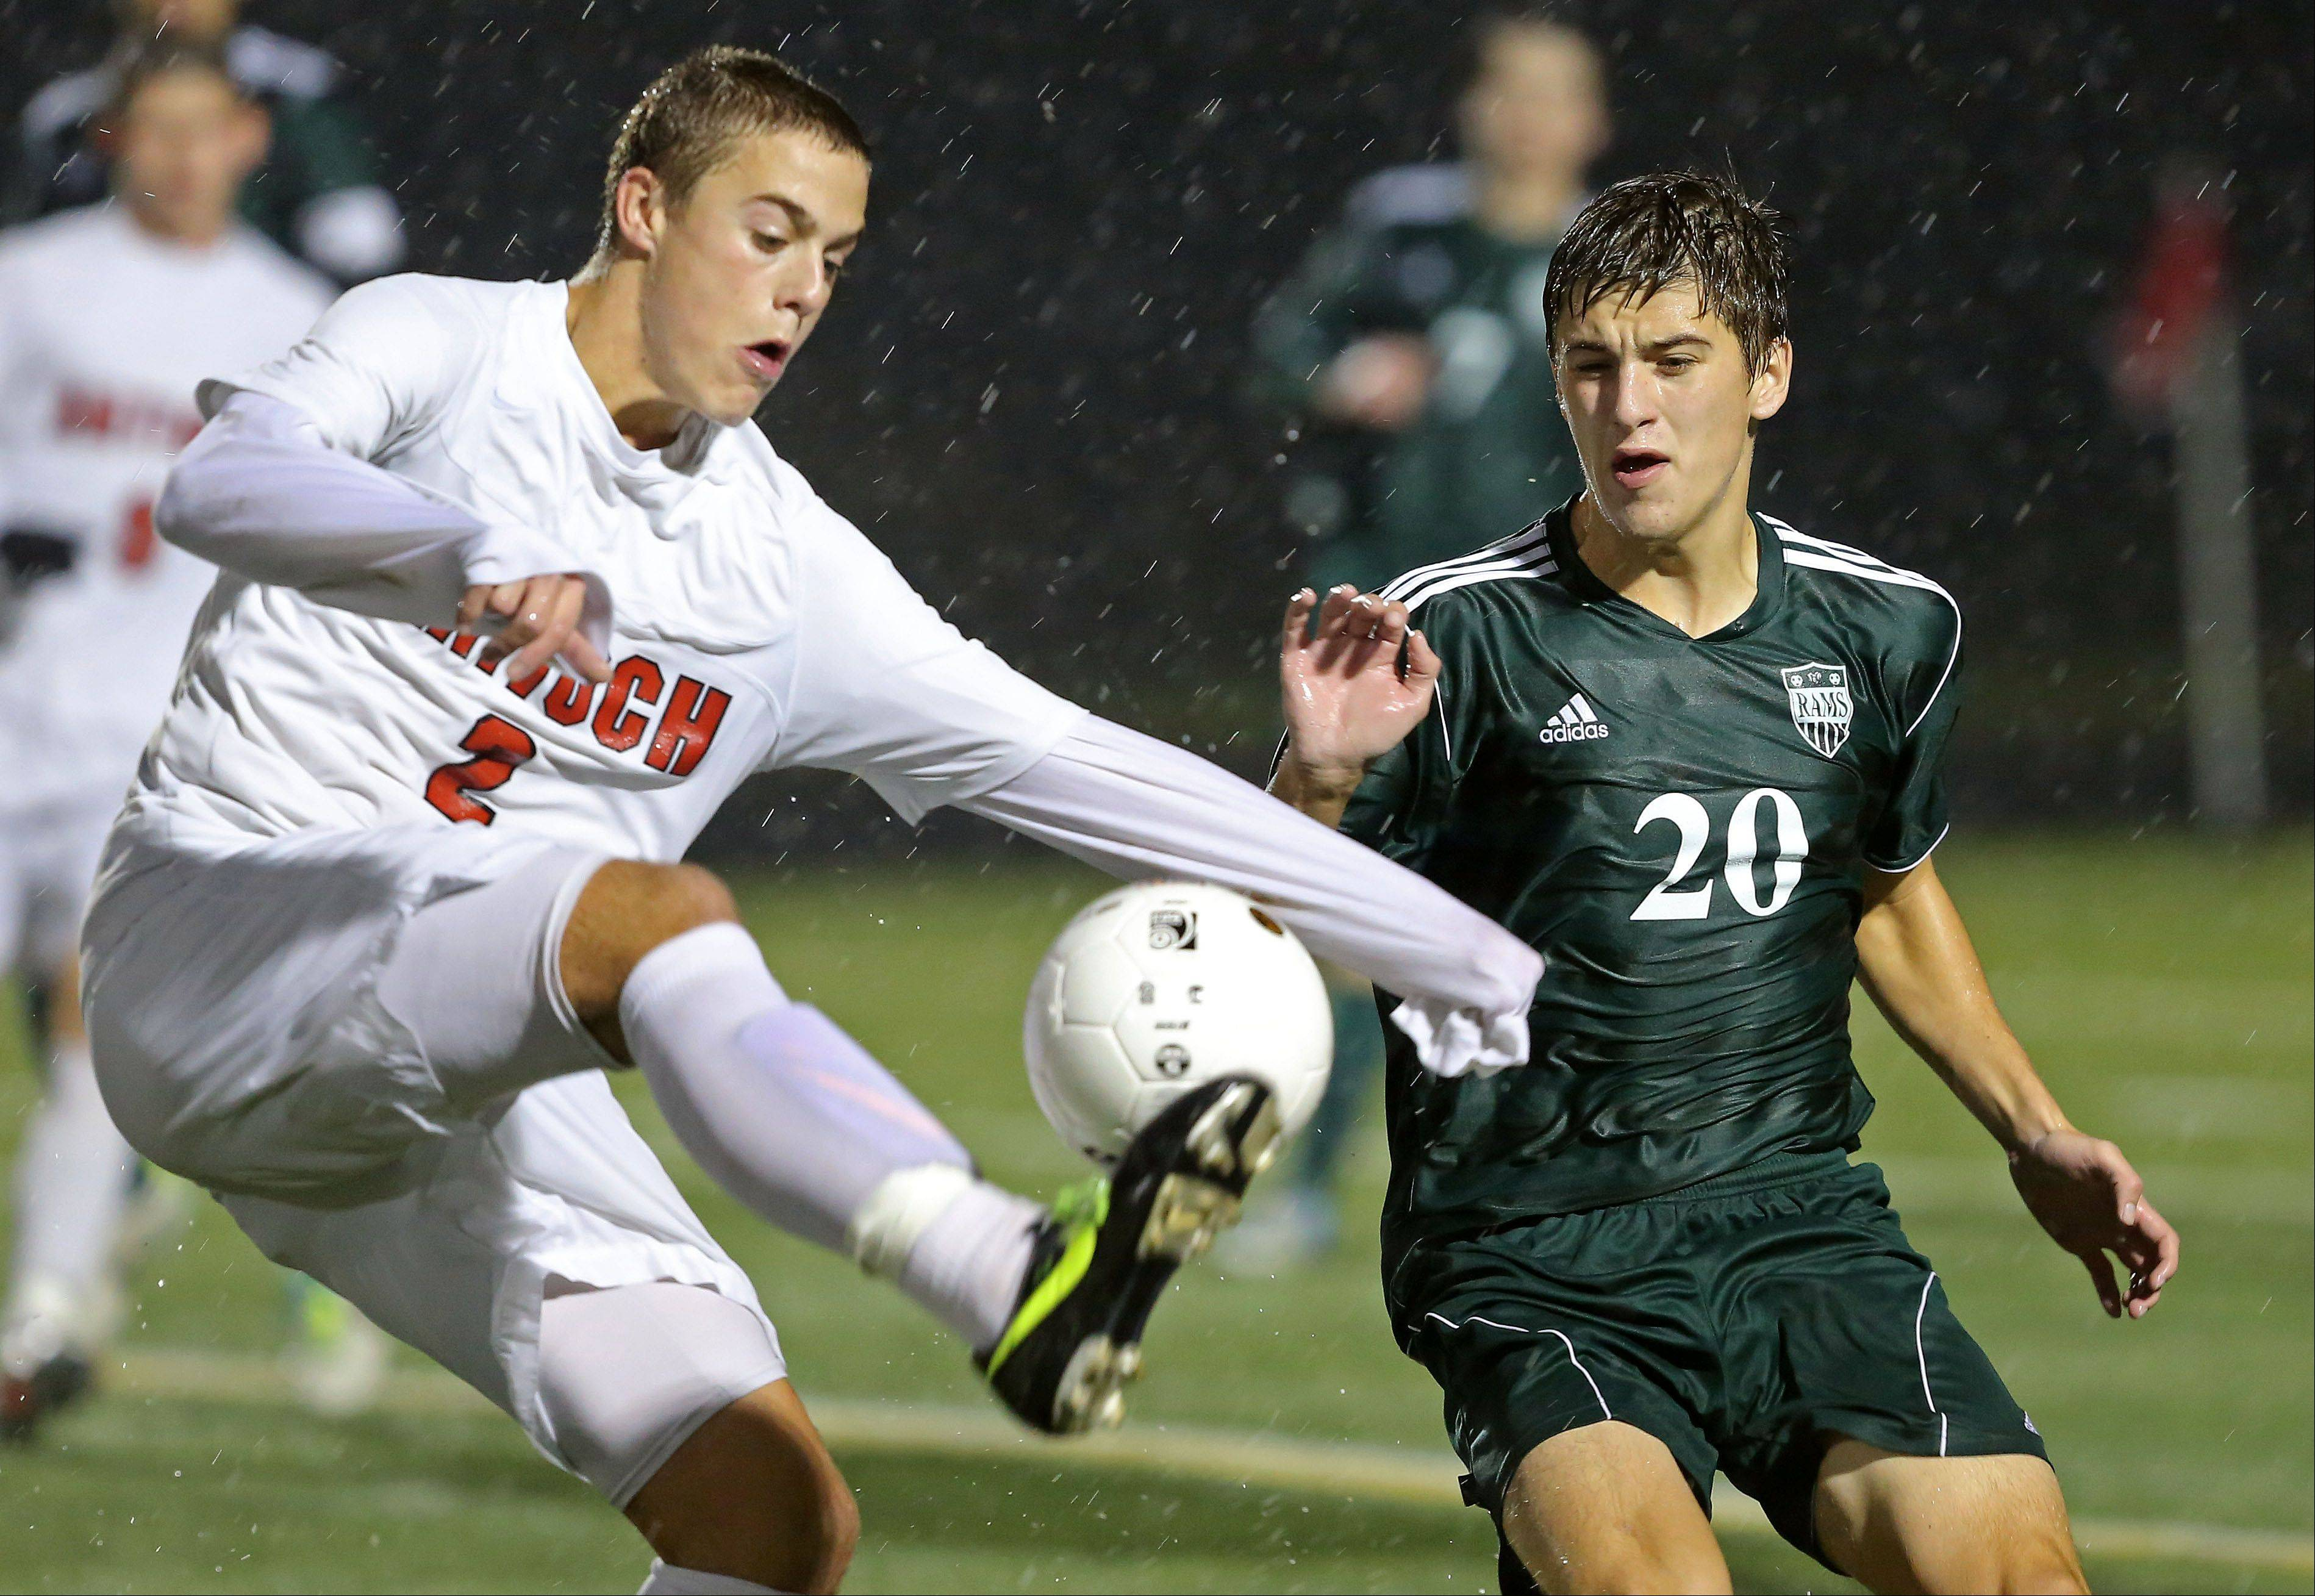 Antioch's Eric Pedersen, left, and Grayslake Central's Paul Kulis battle for the ball during the Class 3A sectional semifinal Wednesday at Grayslake North High School.